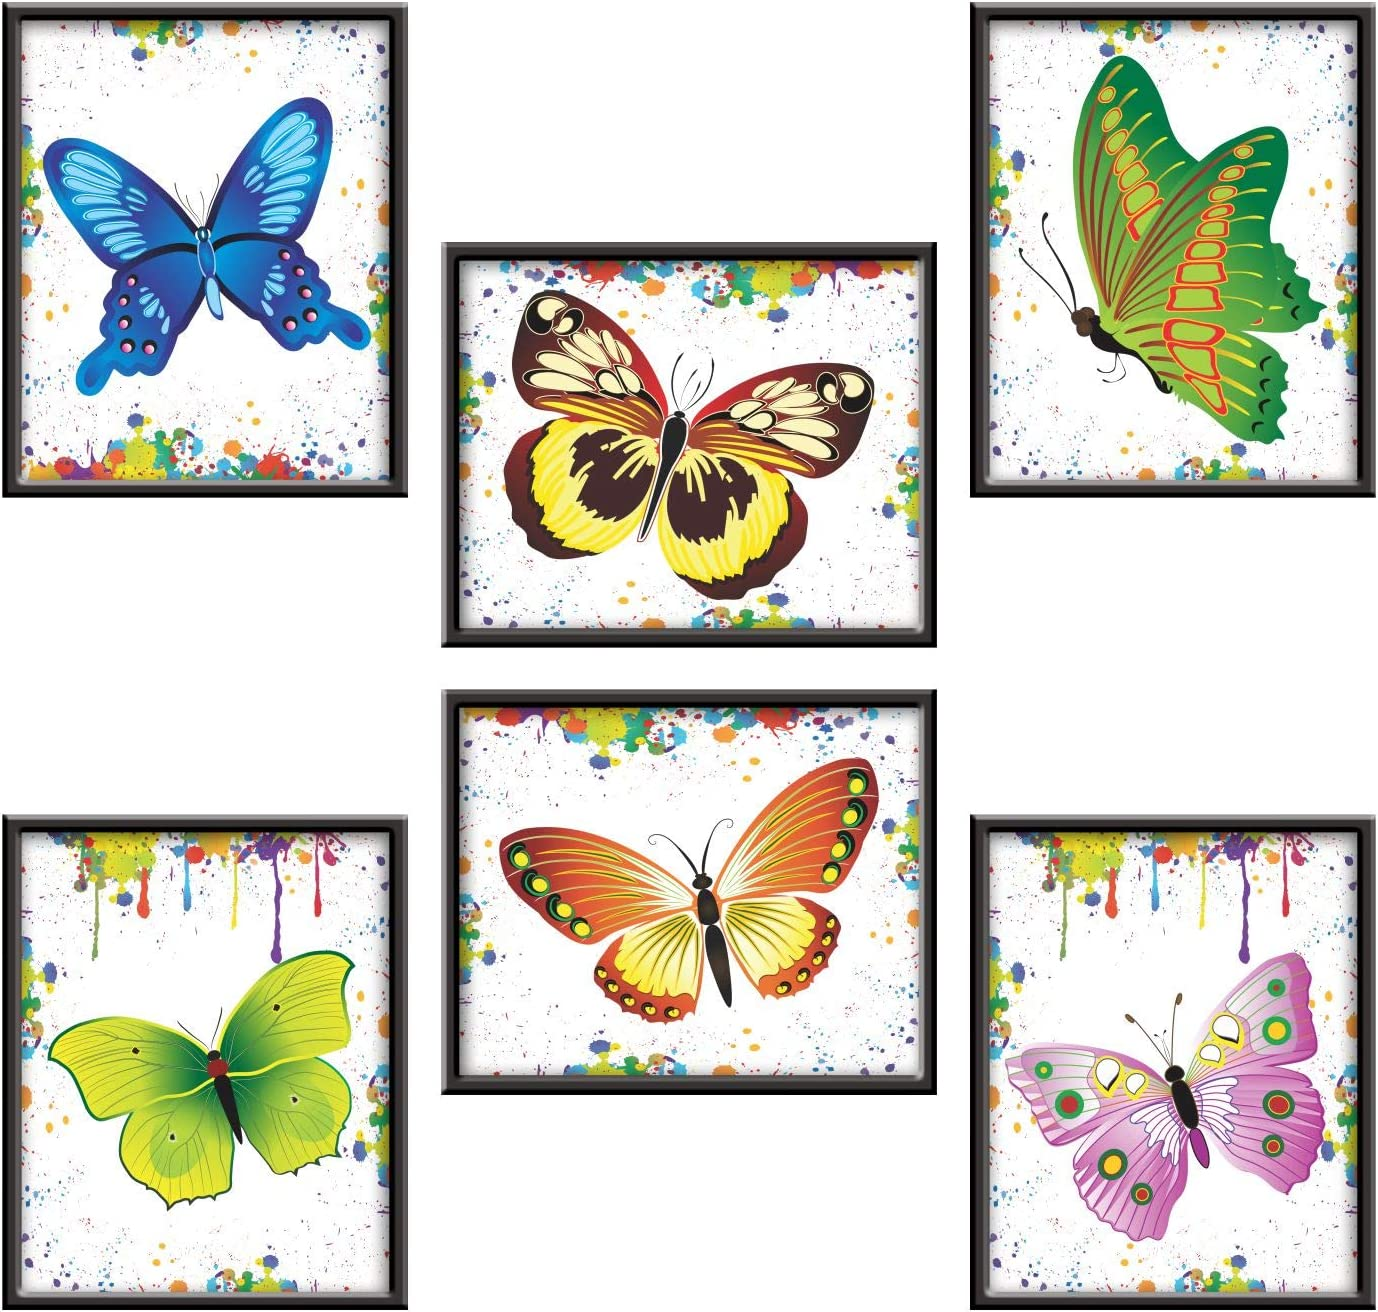 Butterfly Art Prints - (Set of 6) Vinyl Stickers 9 x 11 Girls Room Wall Decor No Need to Frame Just Peel and Stick Look Like Framed